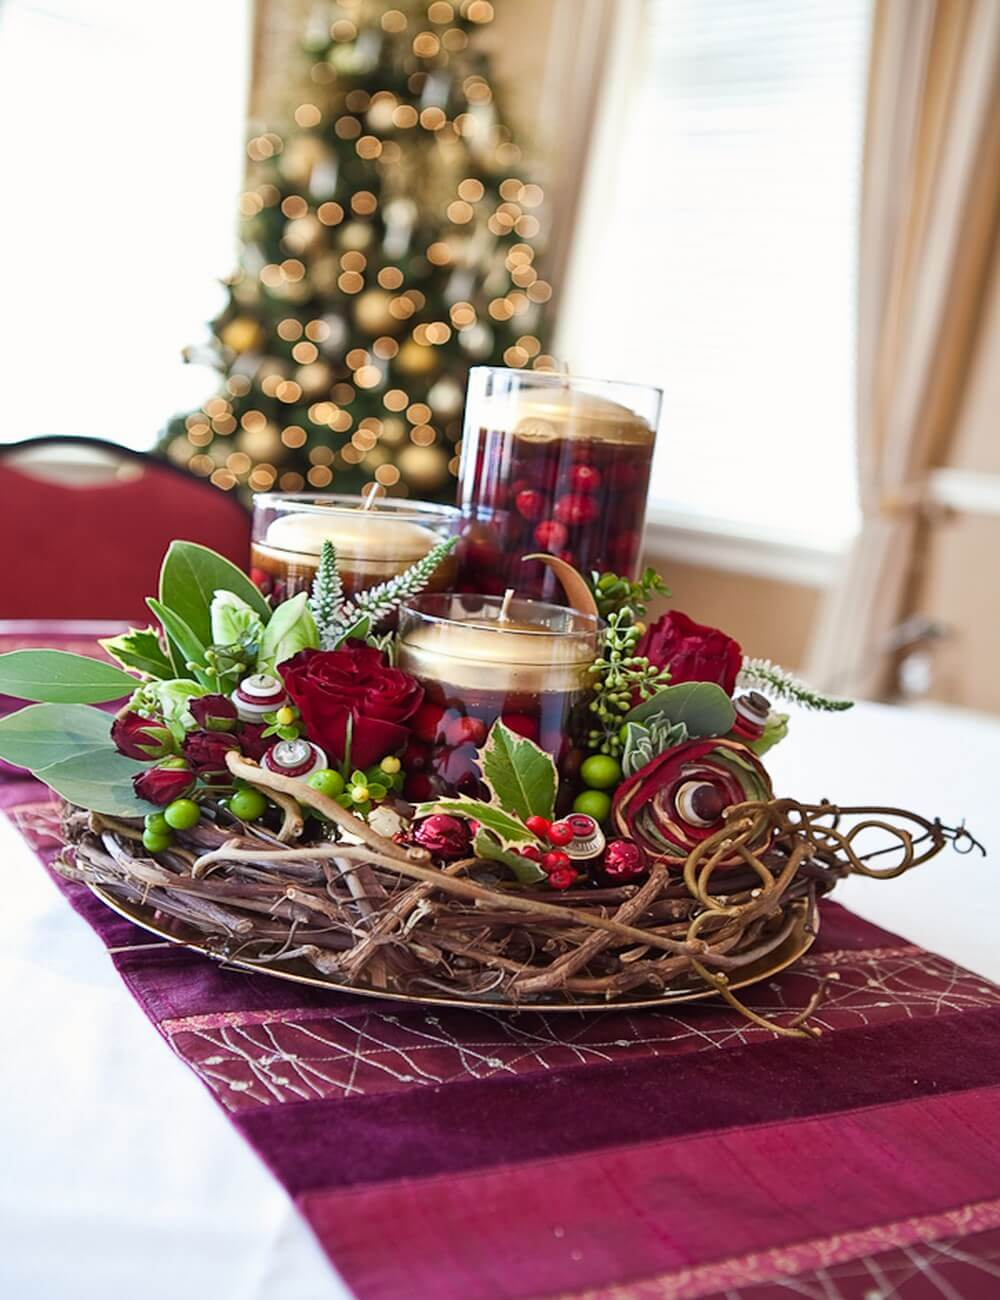 Best christmas centerpieces for a holiday table https